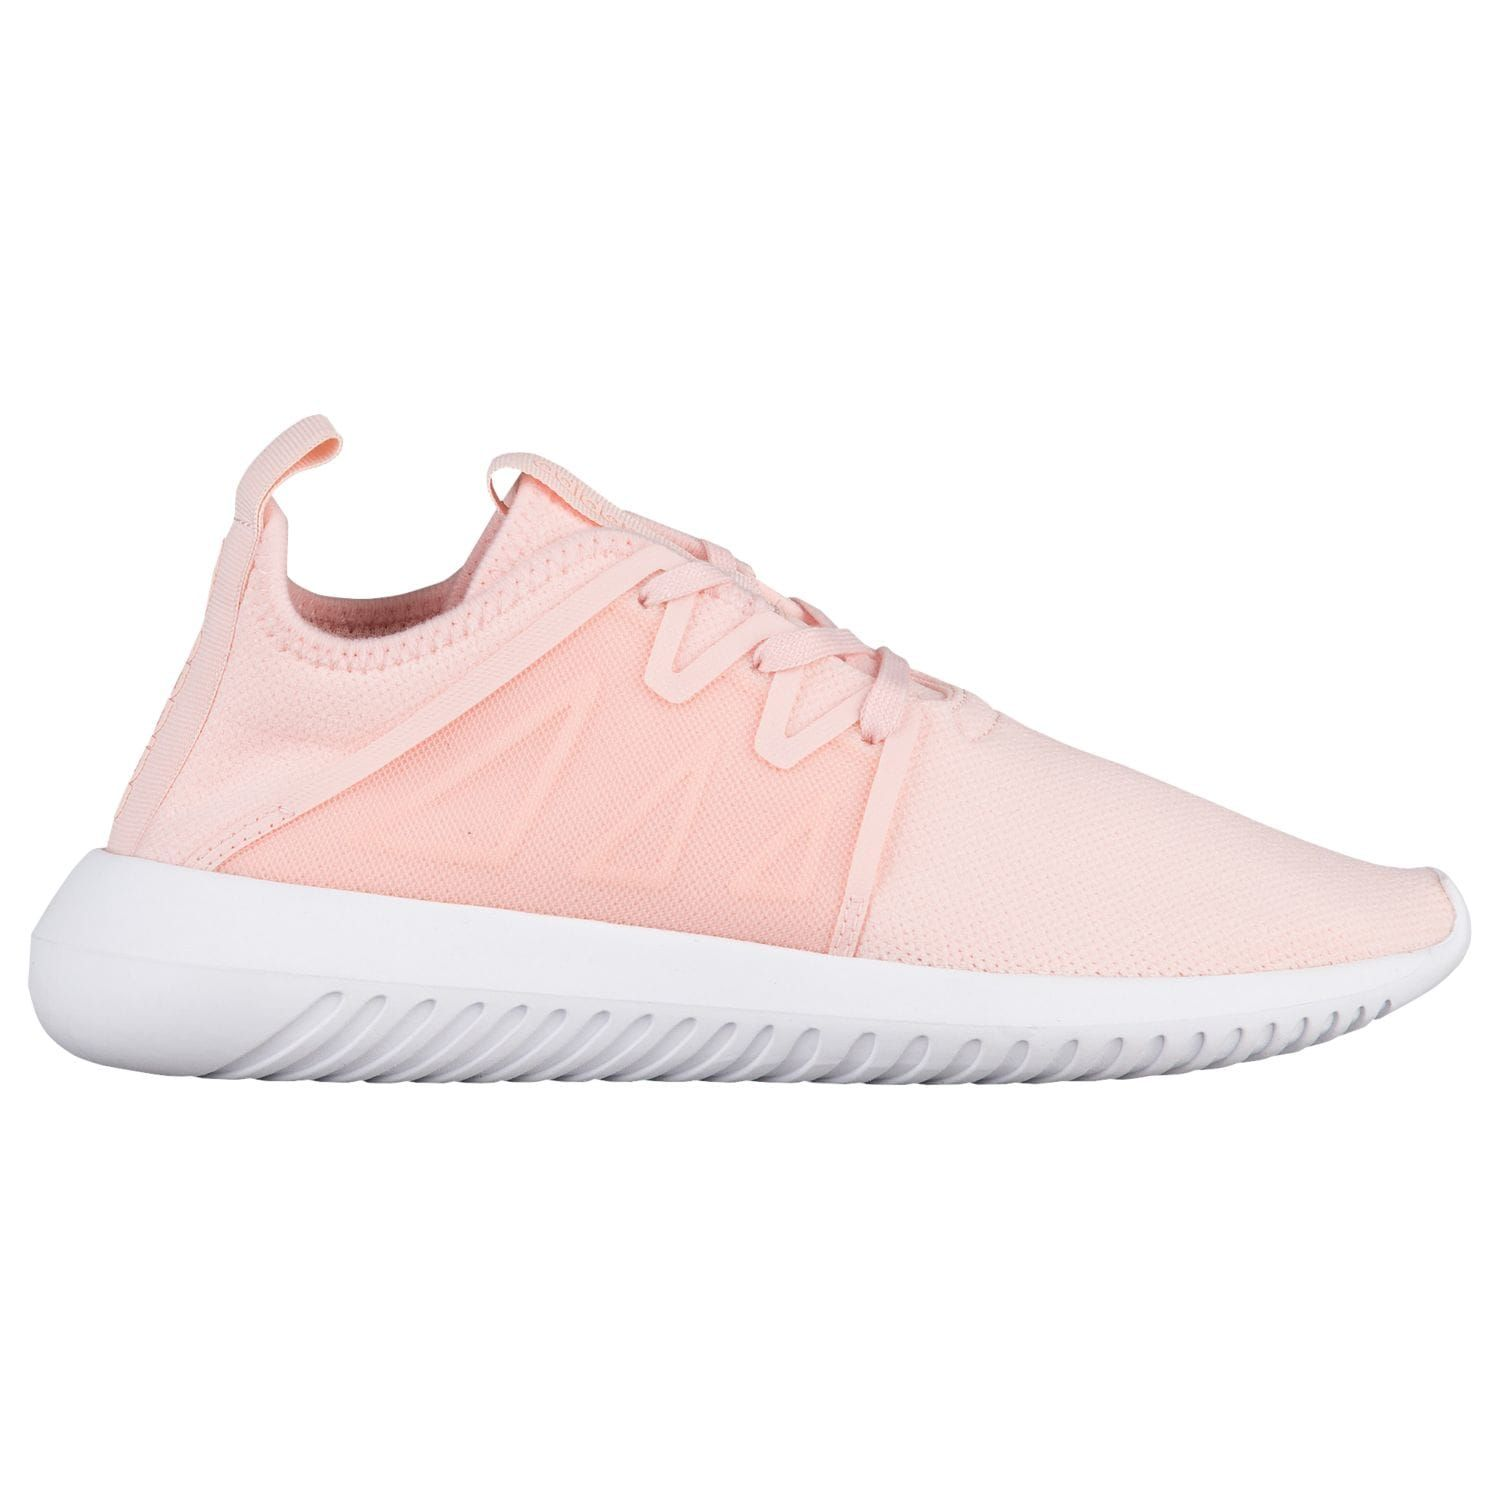 wholesale dealer e7862 6d5f3 adidas Originals Tubular Viral 2 - Women's | Shoes | Adidas ...